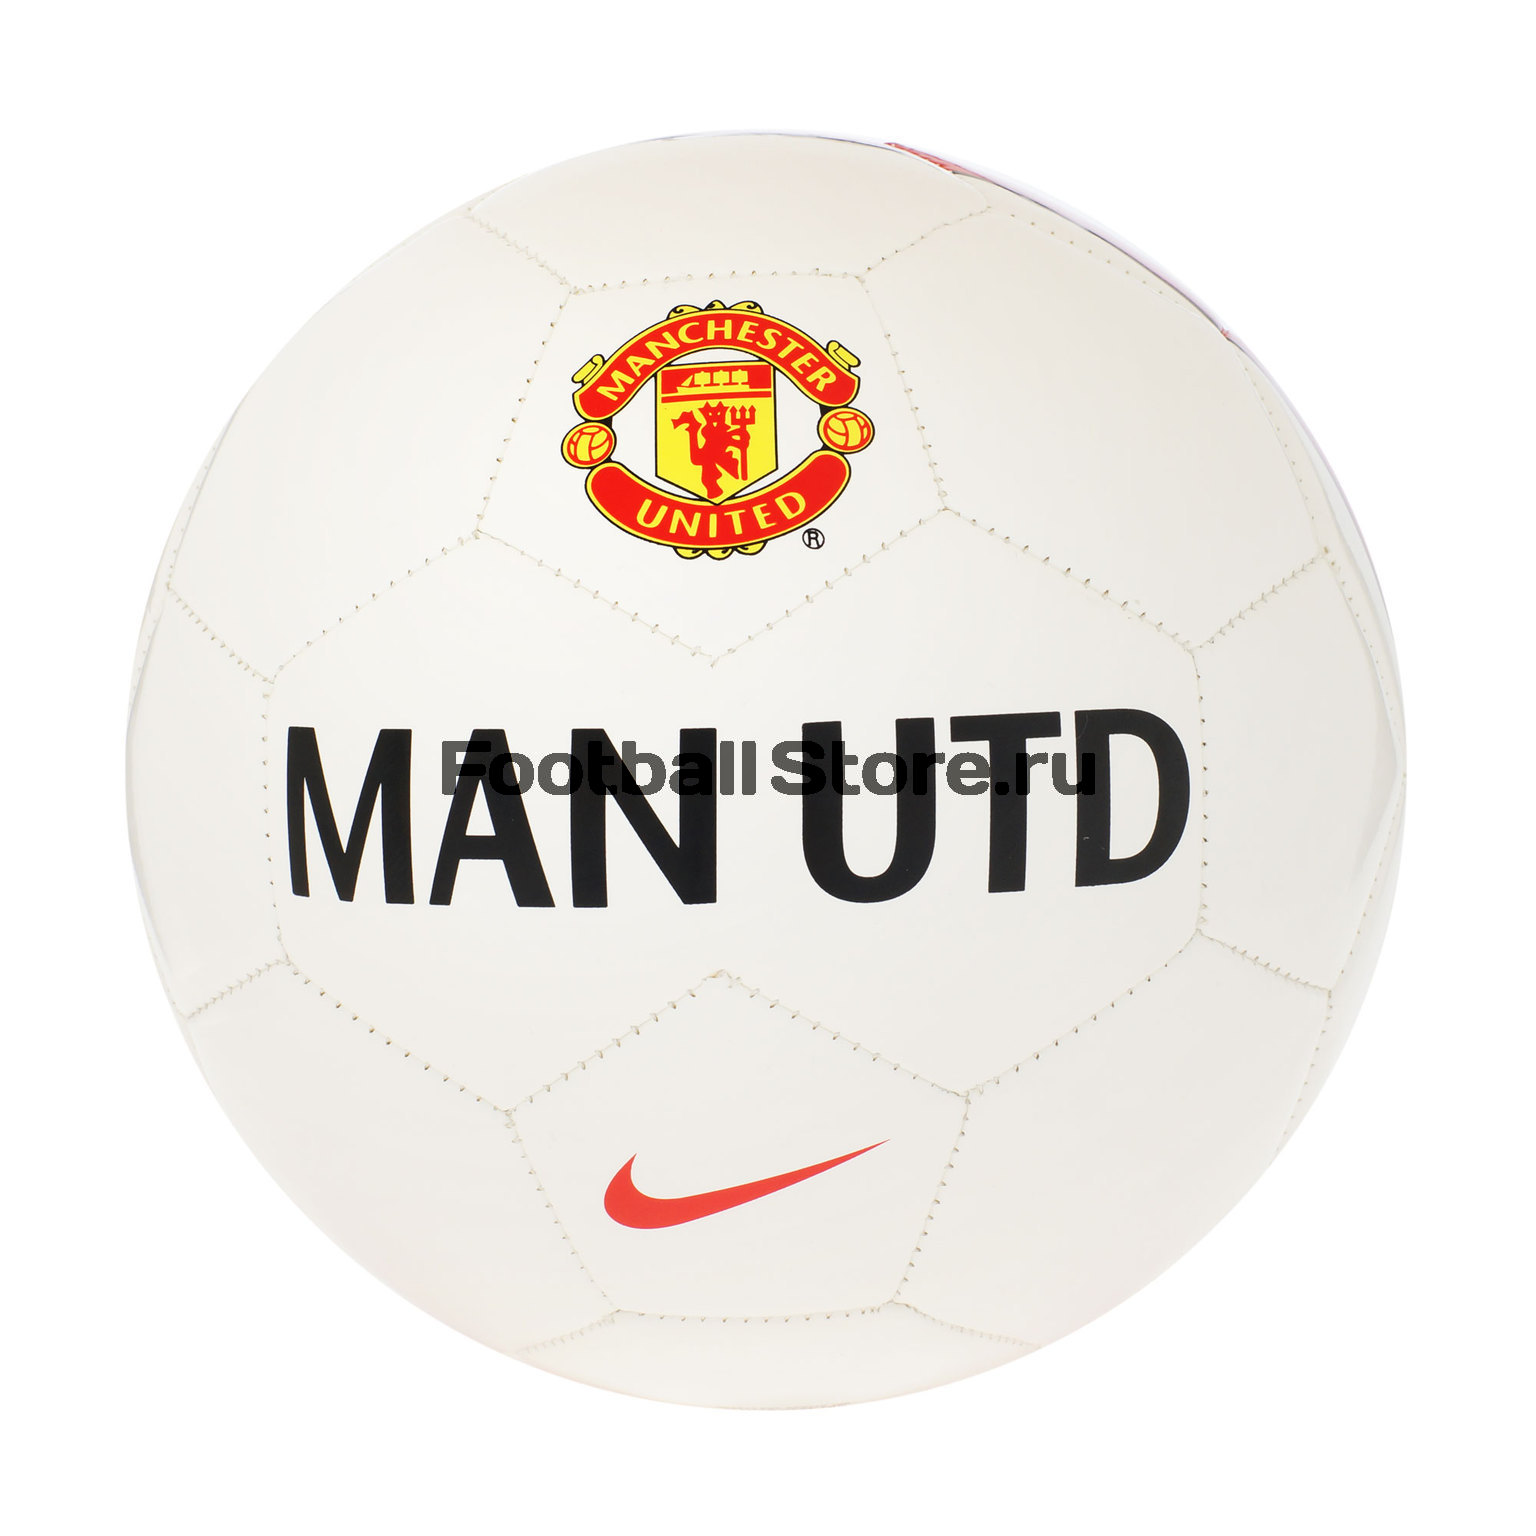 Manchester United Nike Мяч футбольный Nike Manchester Untd Supporters Ball SC2319-106